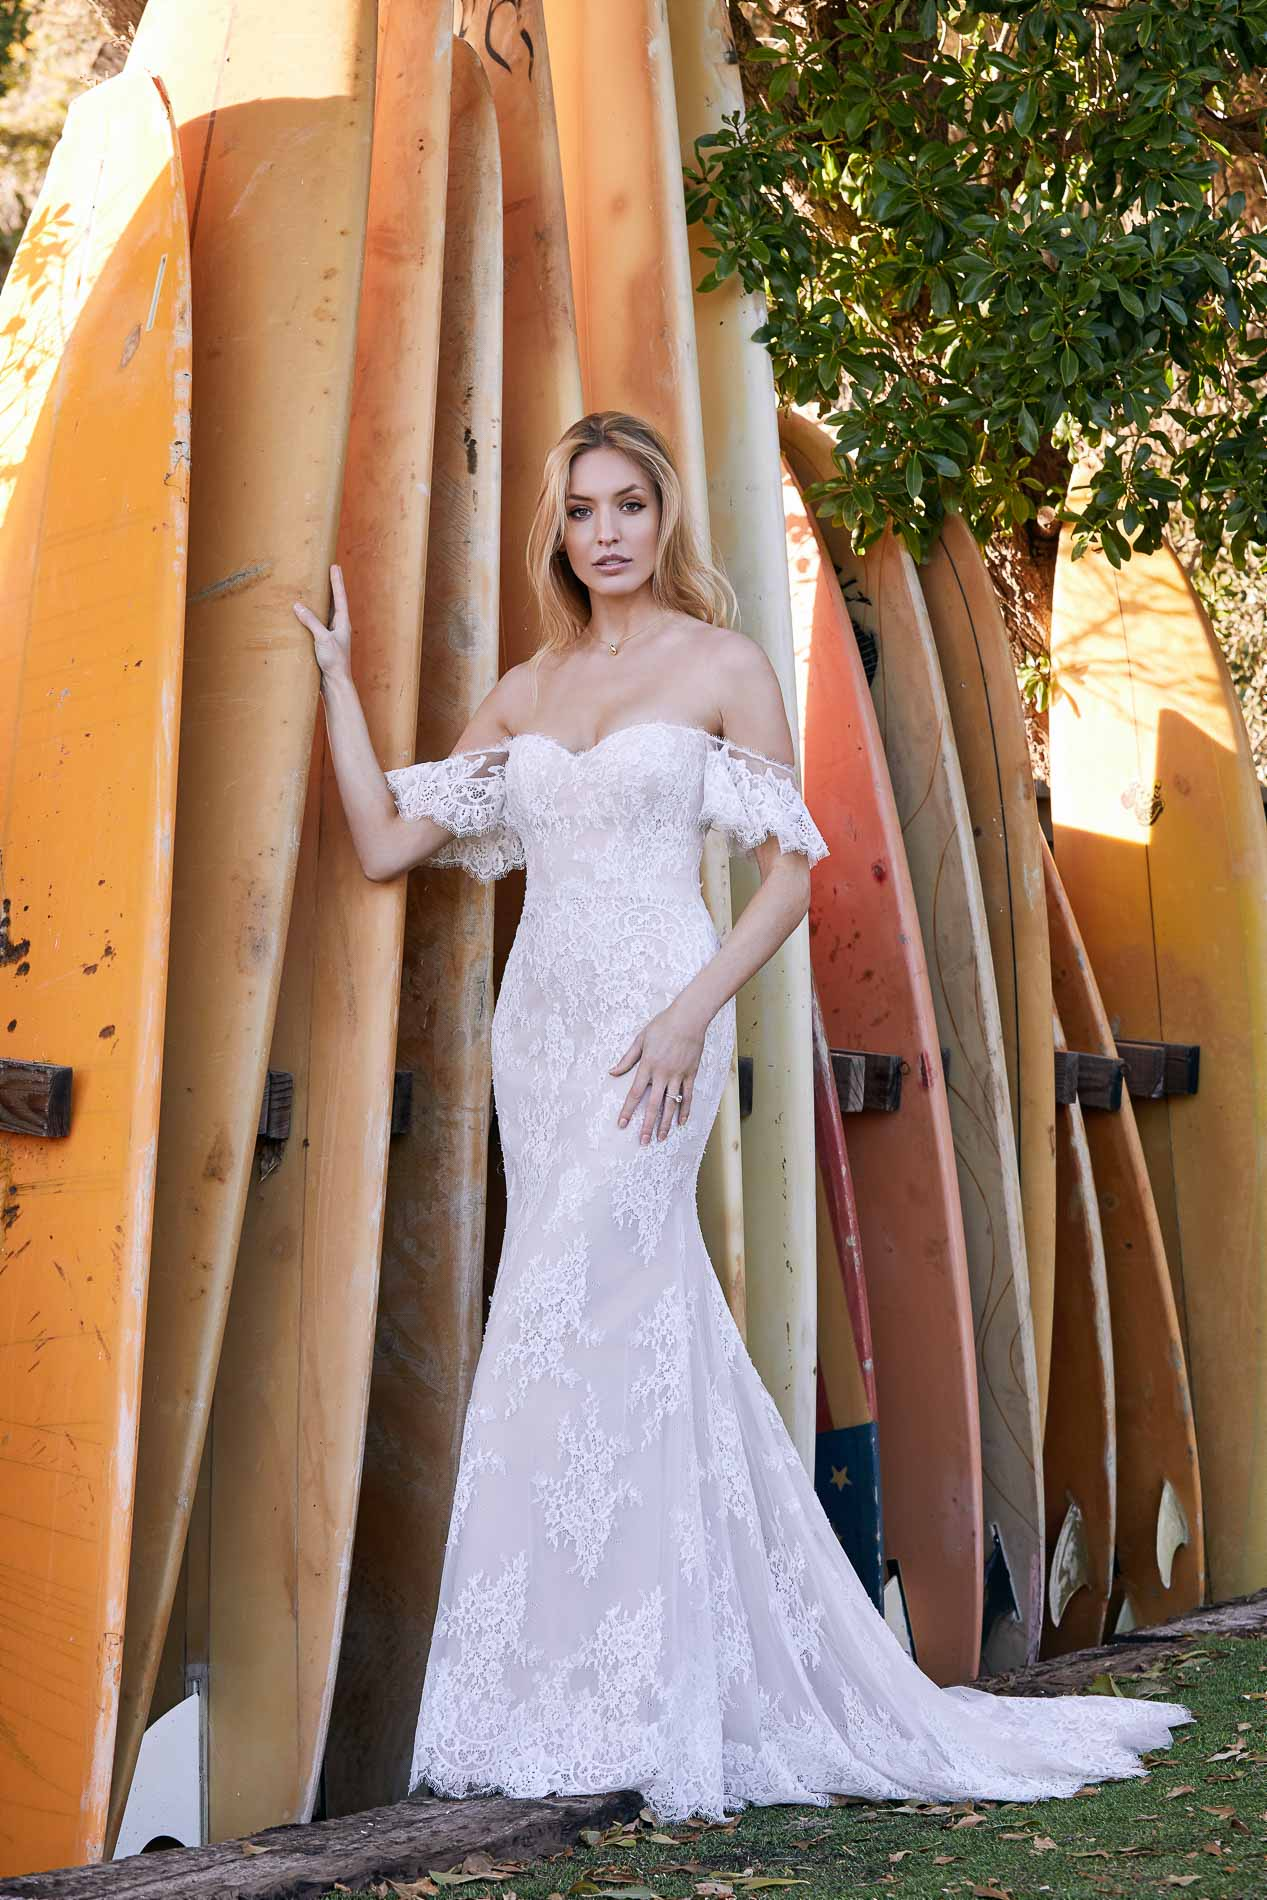 Our bridal boutique offers a wide range of bespoke and luxourious bridal dresses for every bride. Click to shop now for your perfect dress.